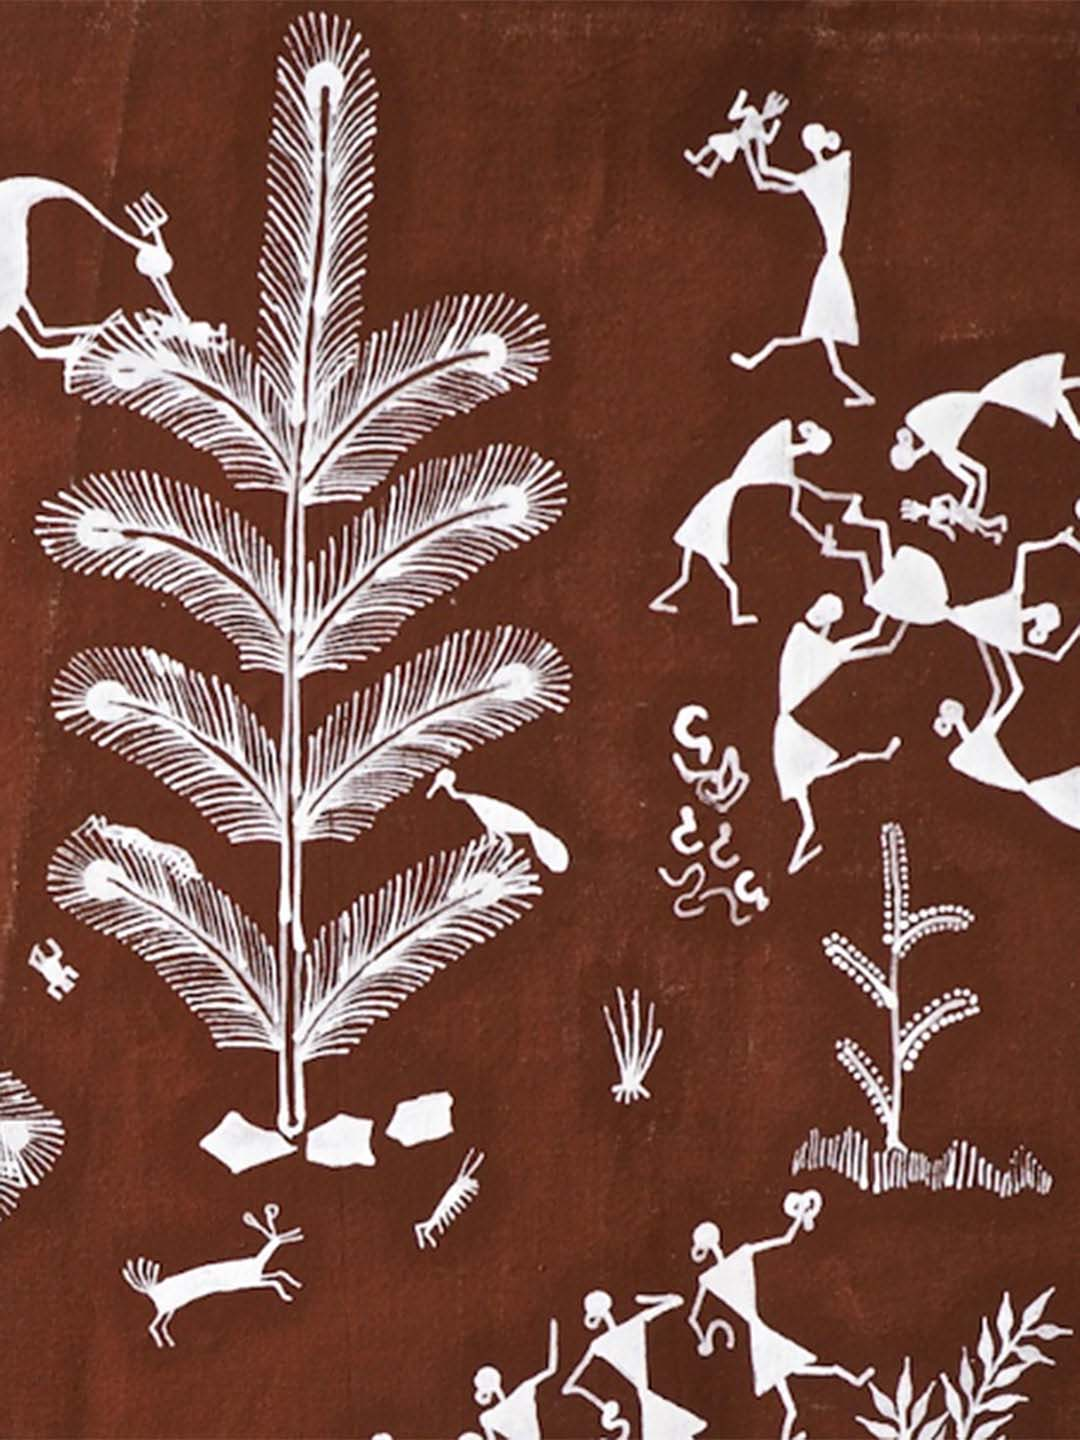 Warli Painting of a Woman giving Birth